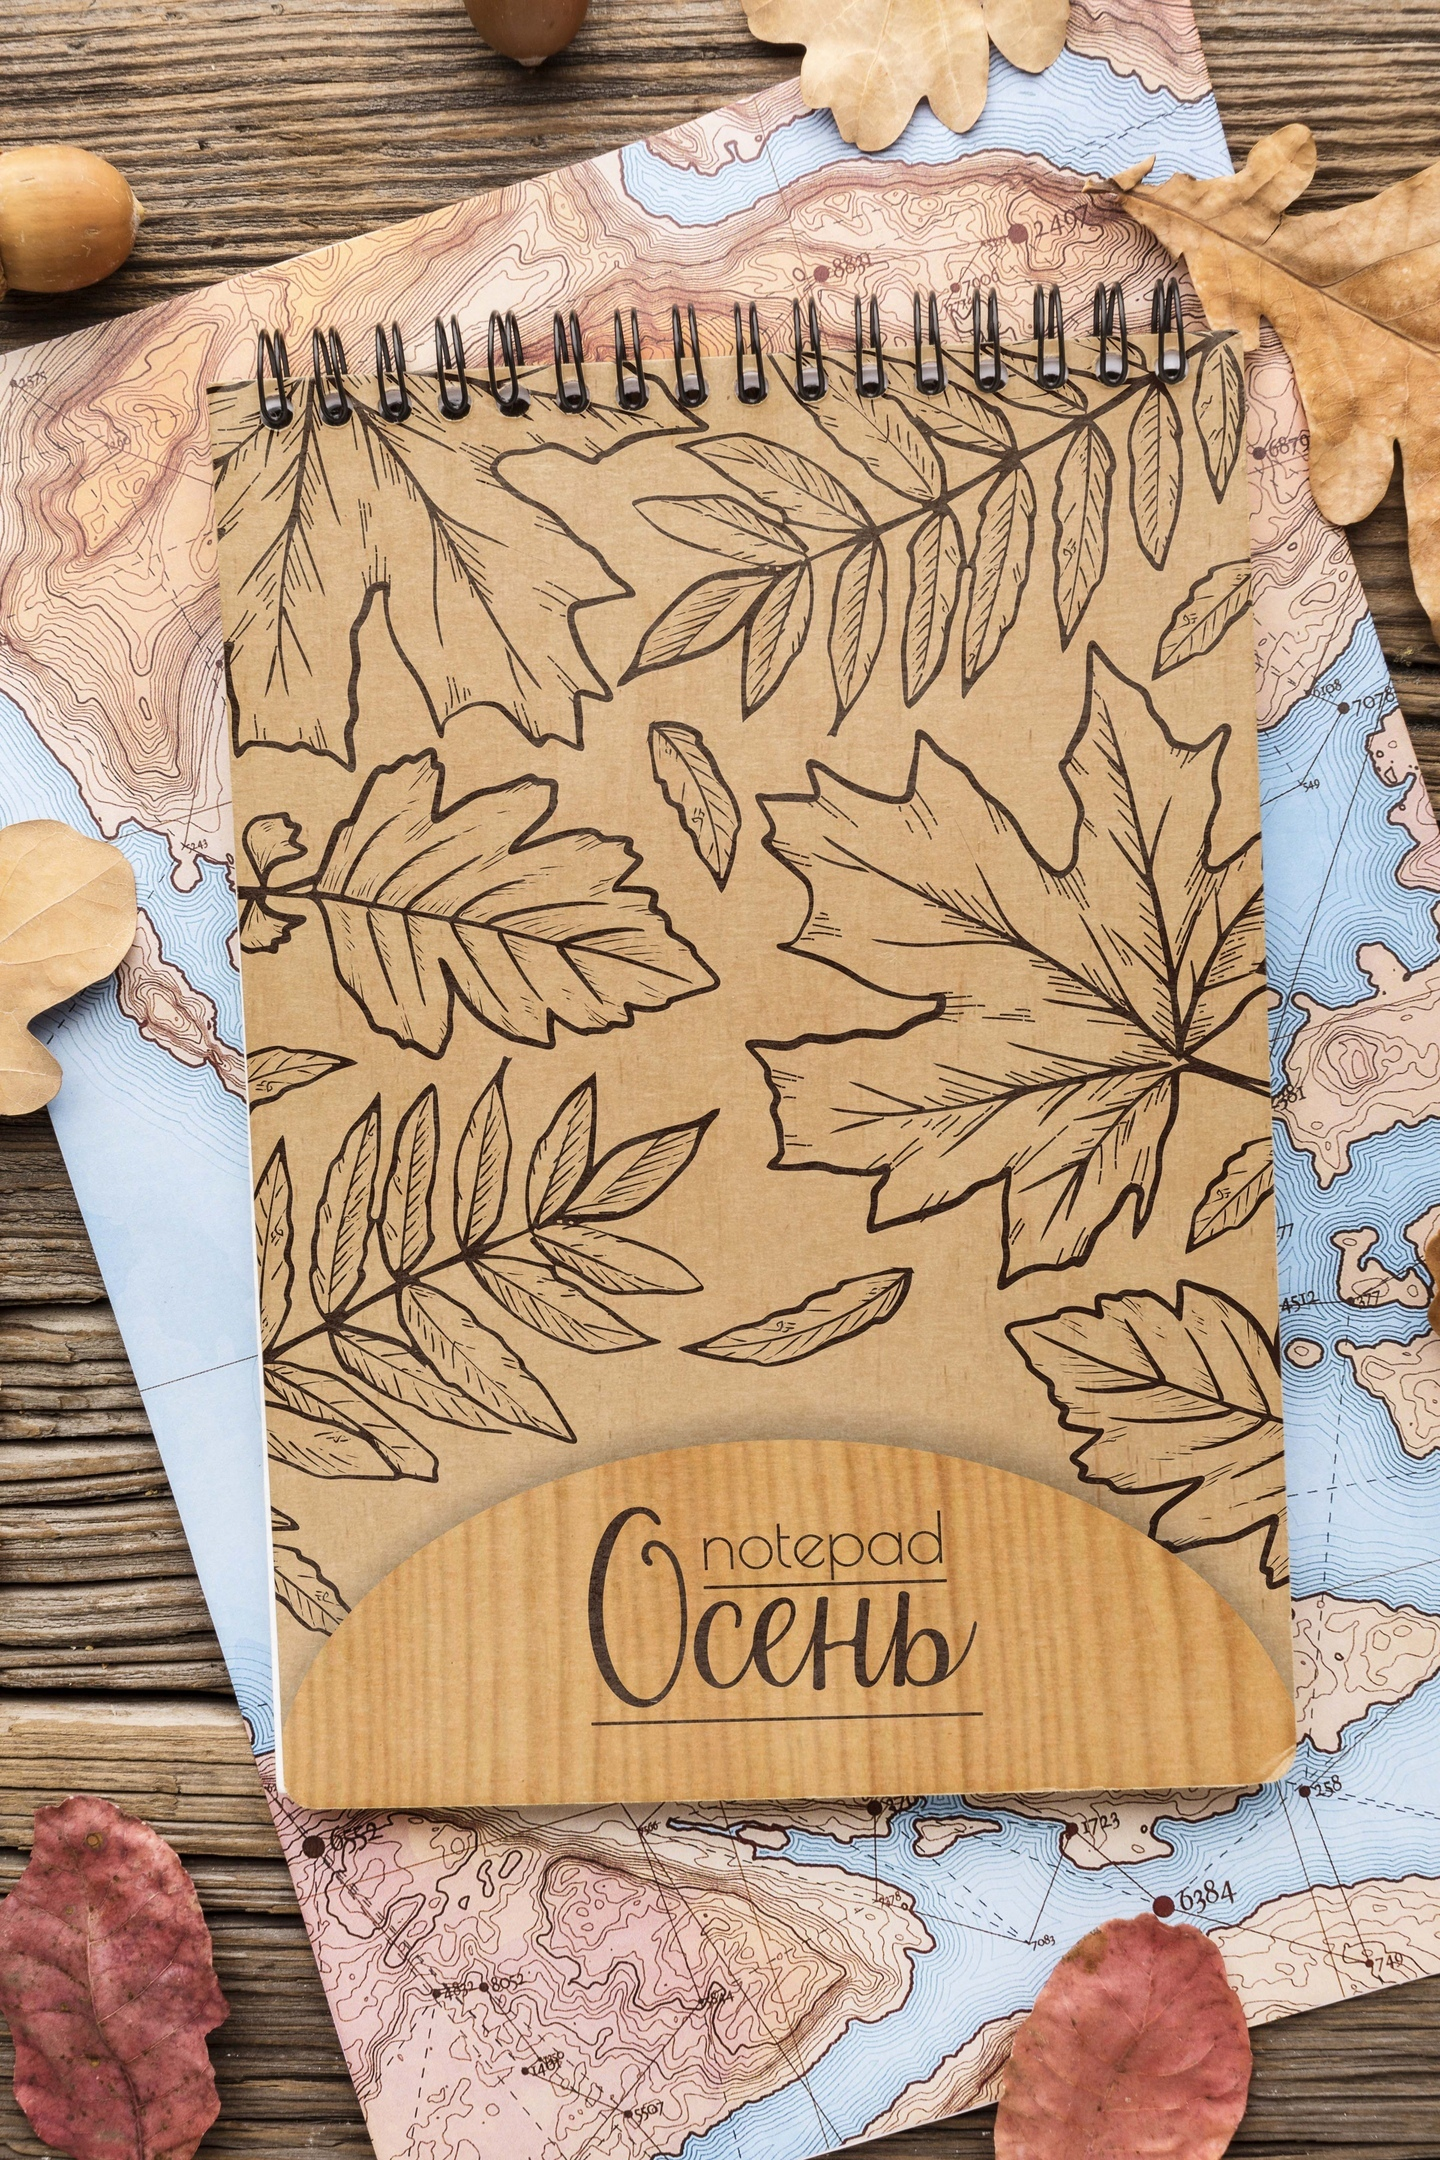 Engraved Notebook Cover Designs Free CDR Vectors Art